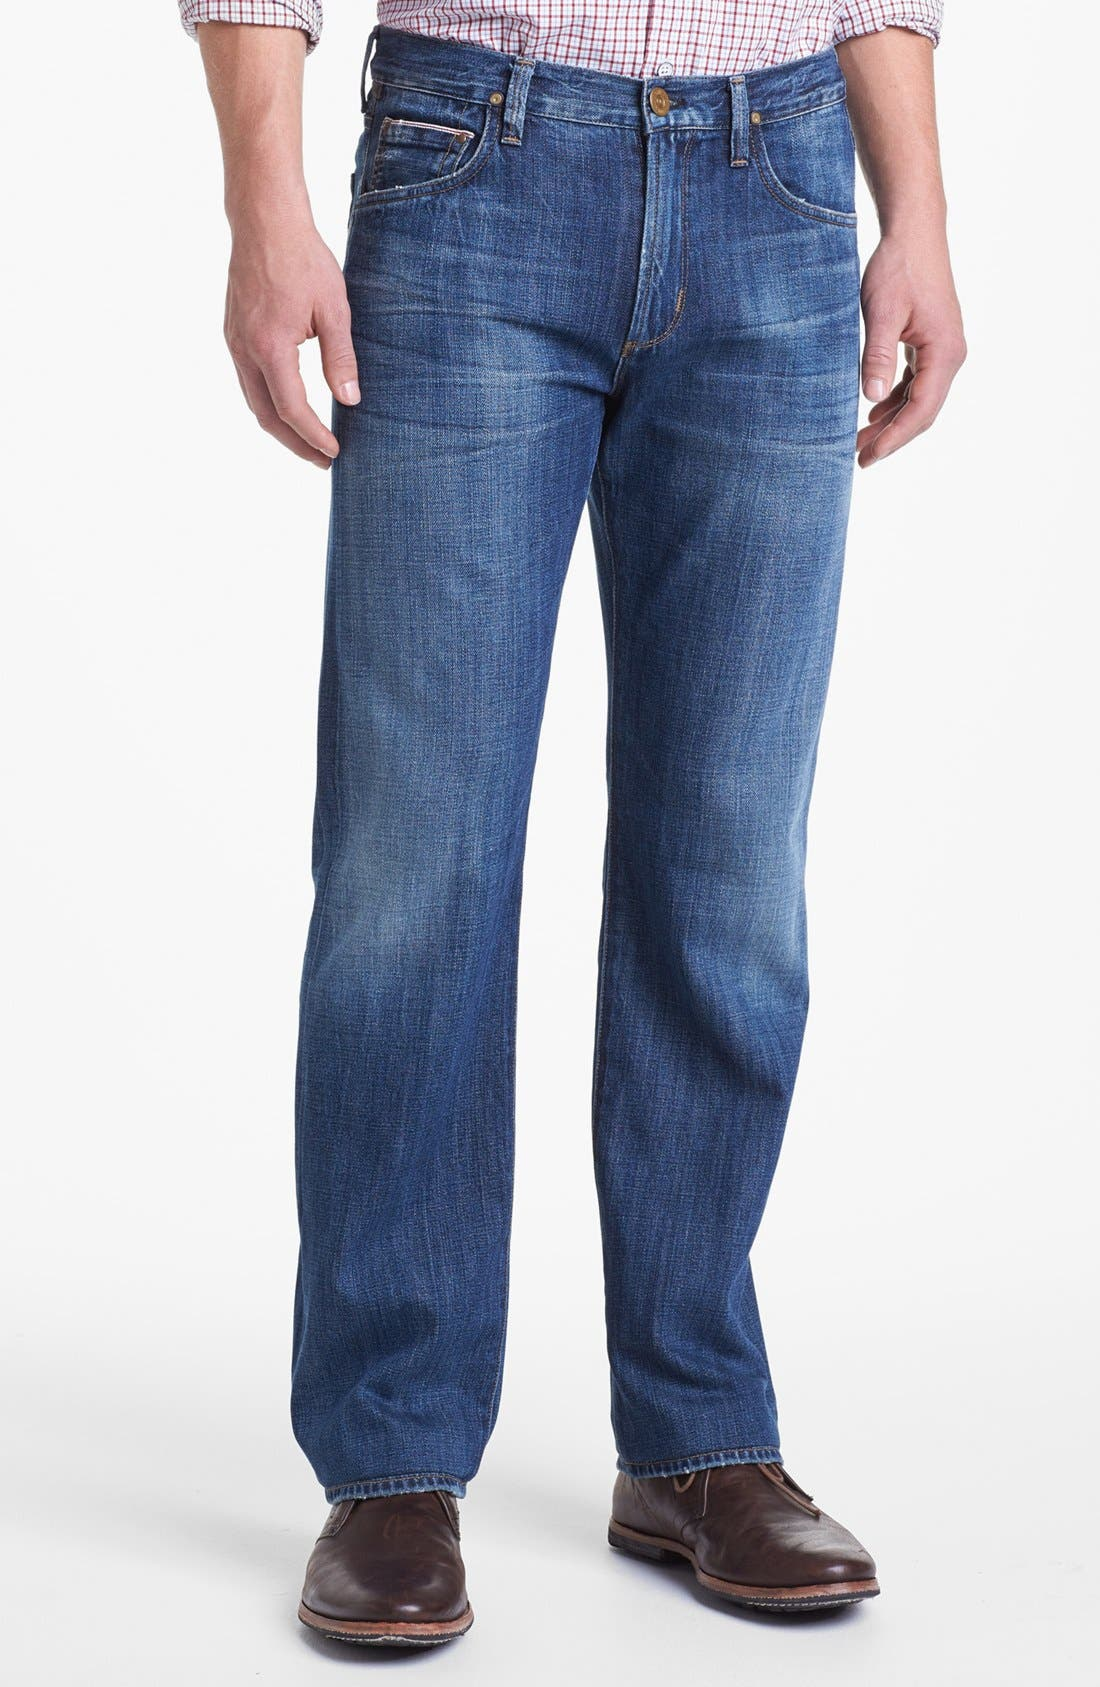 Alternate Image 1 Selected - Citizens of Humanity 'Sid Selvage' Straight Leg Jeans (Kory Wash)